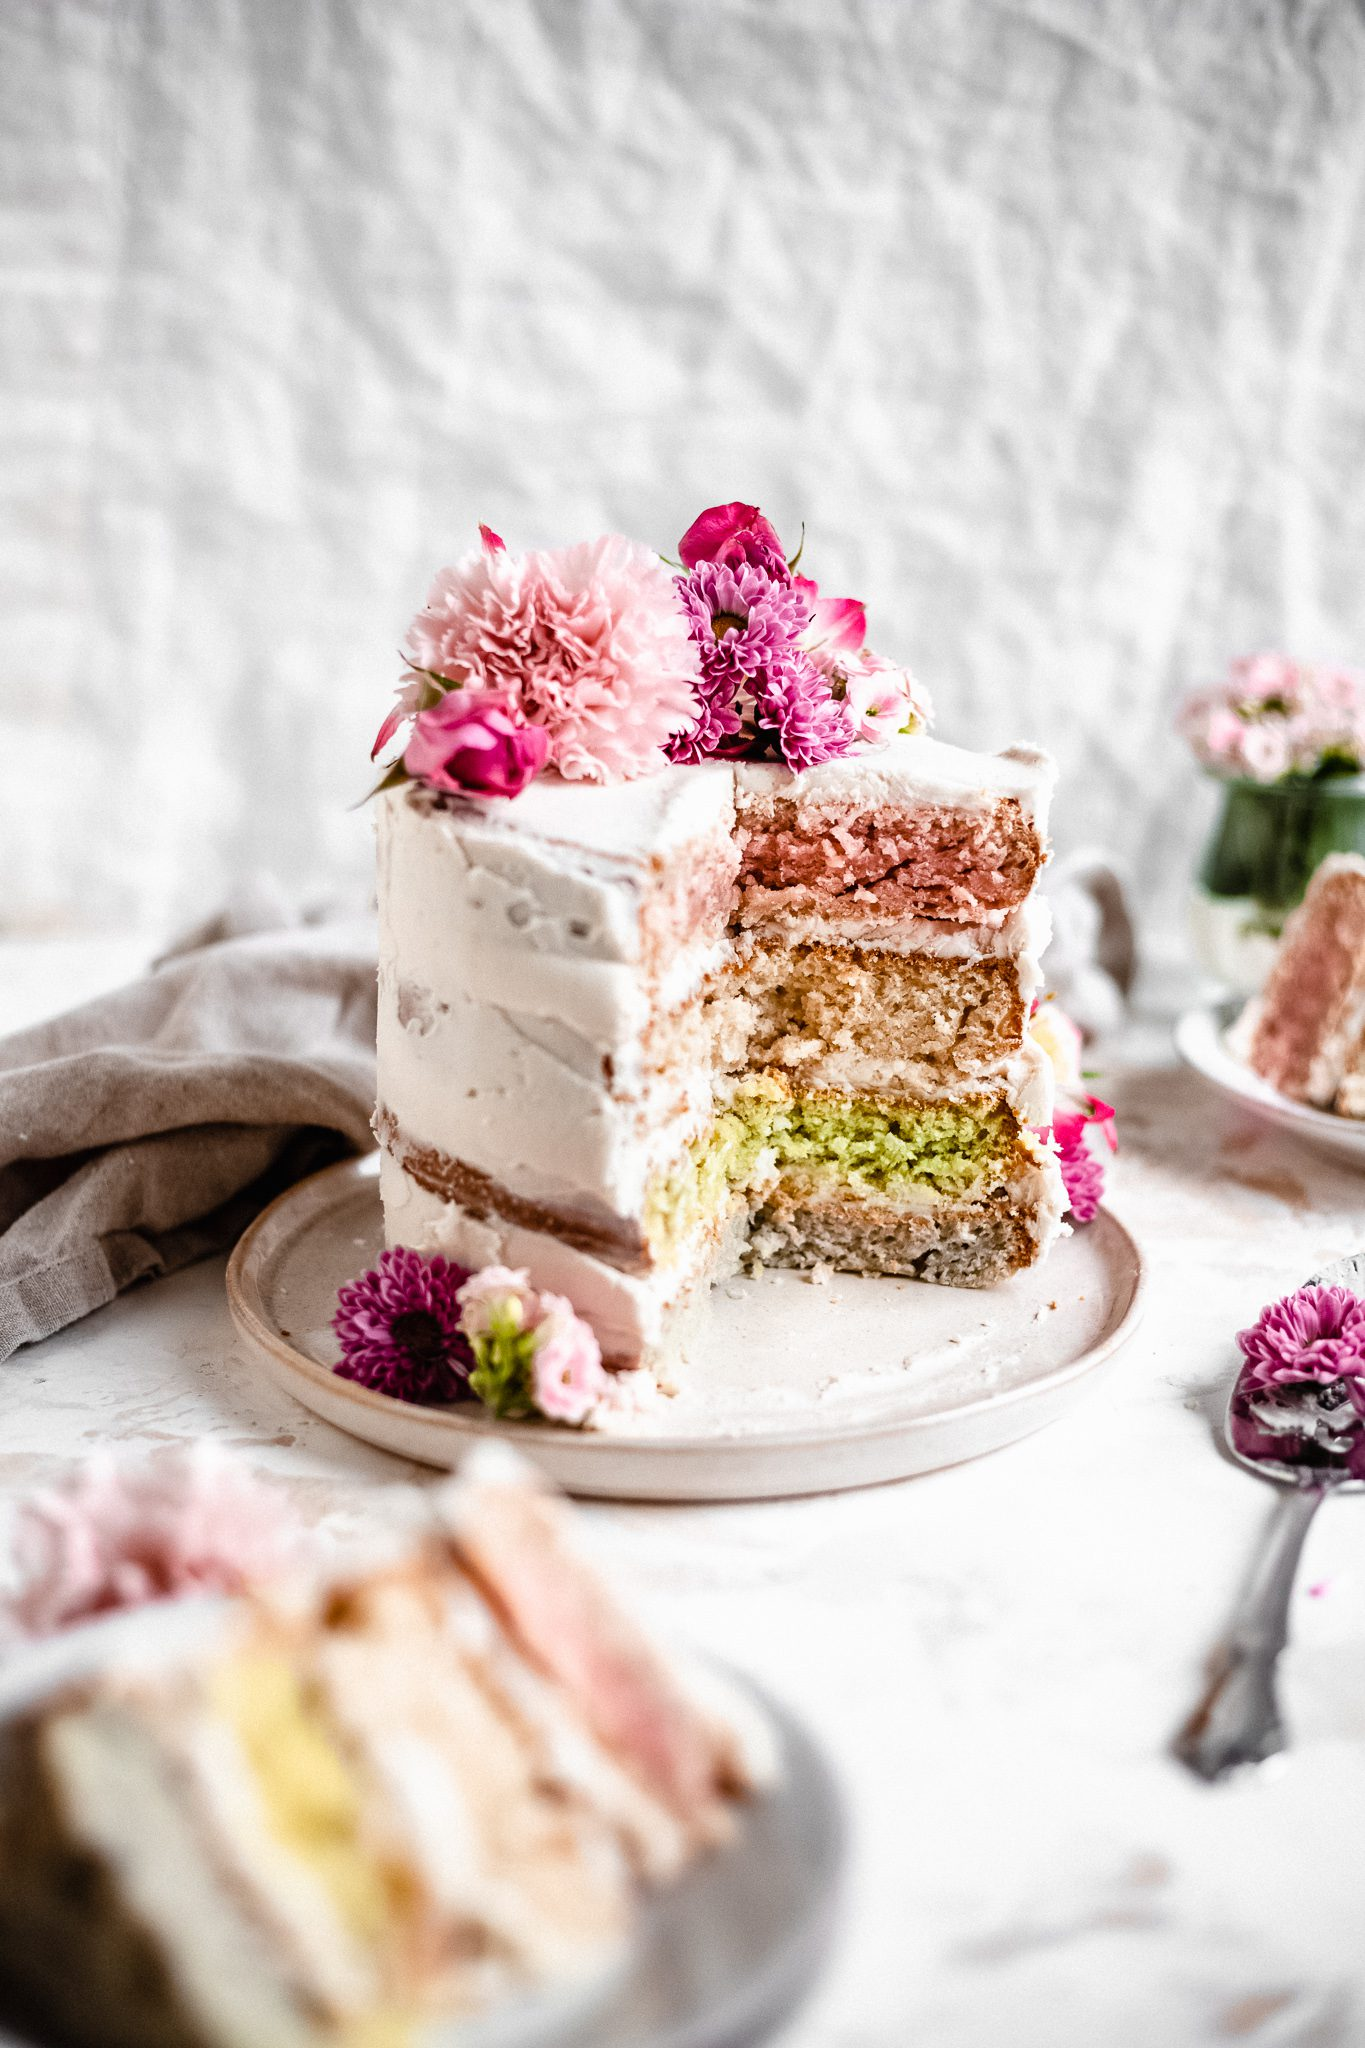 Vegan Pastel Layer Cake